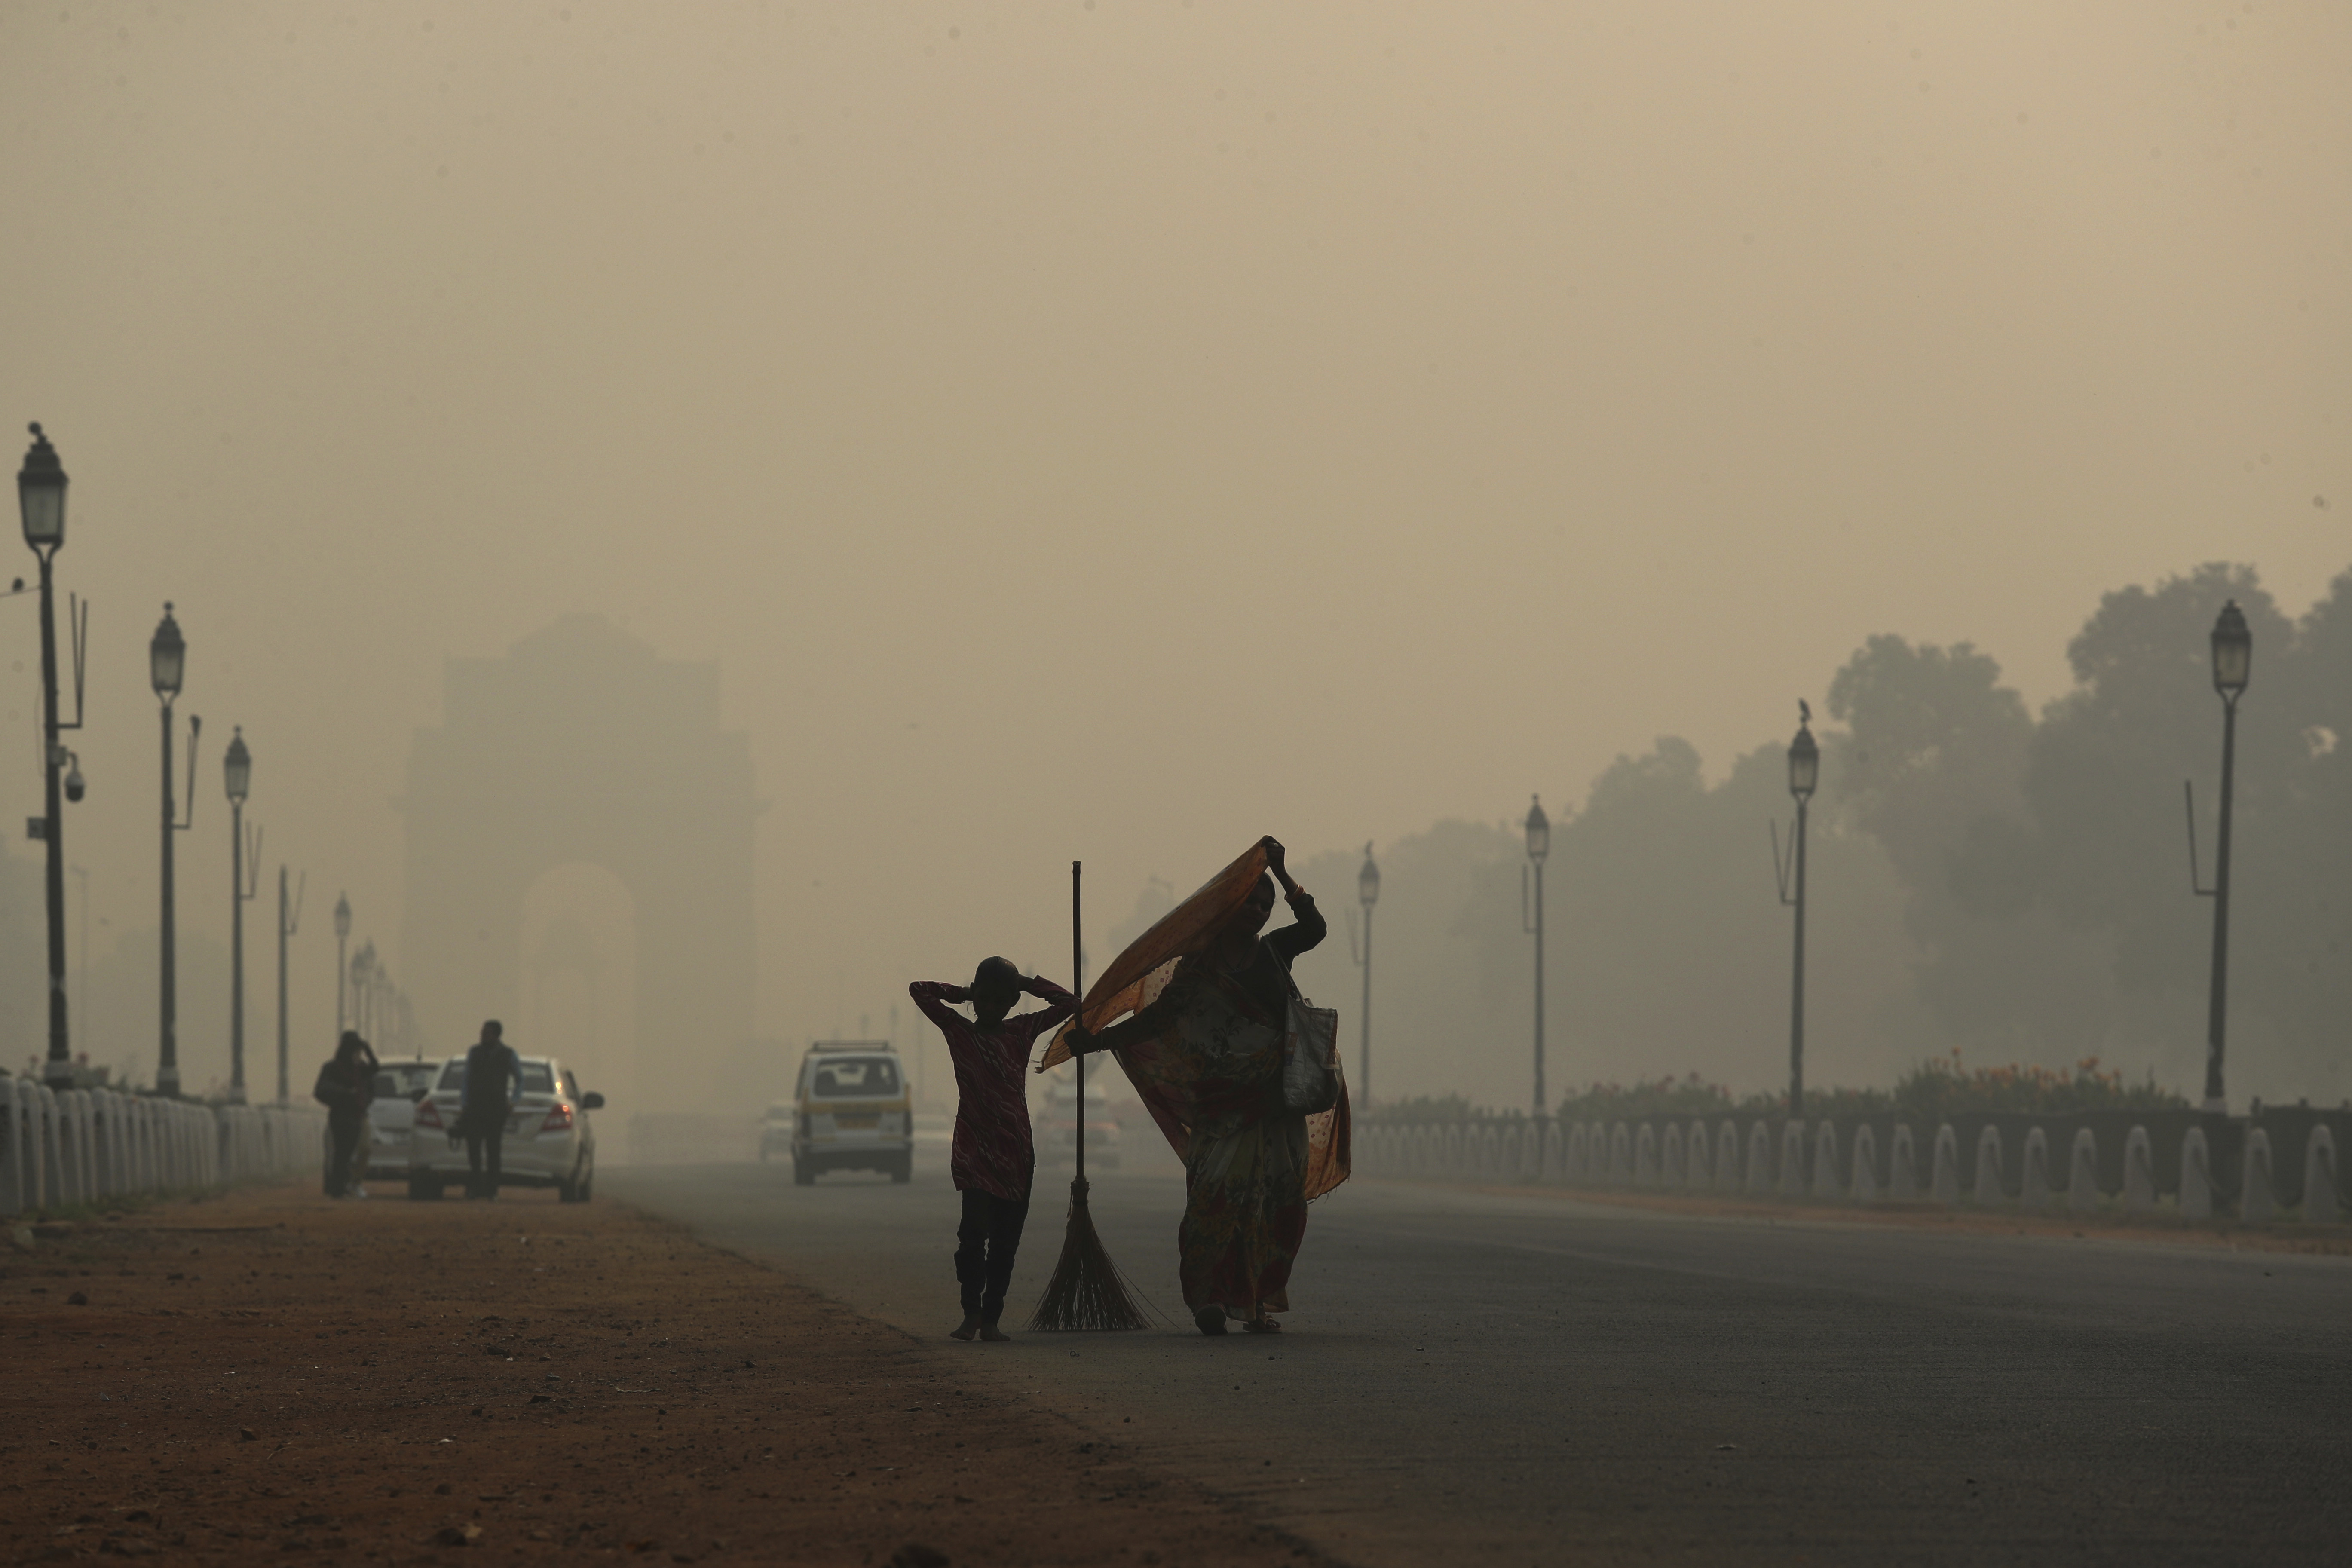 A municipal worker with her daughter leaves after sweeping the India Gate area in Delhi, on Thursday, November 8, as a thick haze of pollution hangs over the city the day after Diwali.